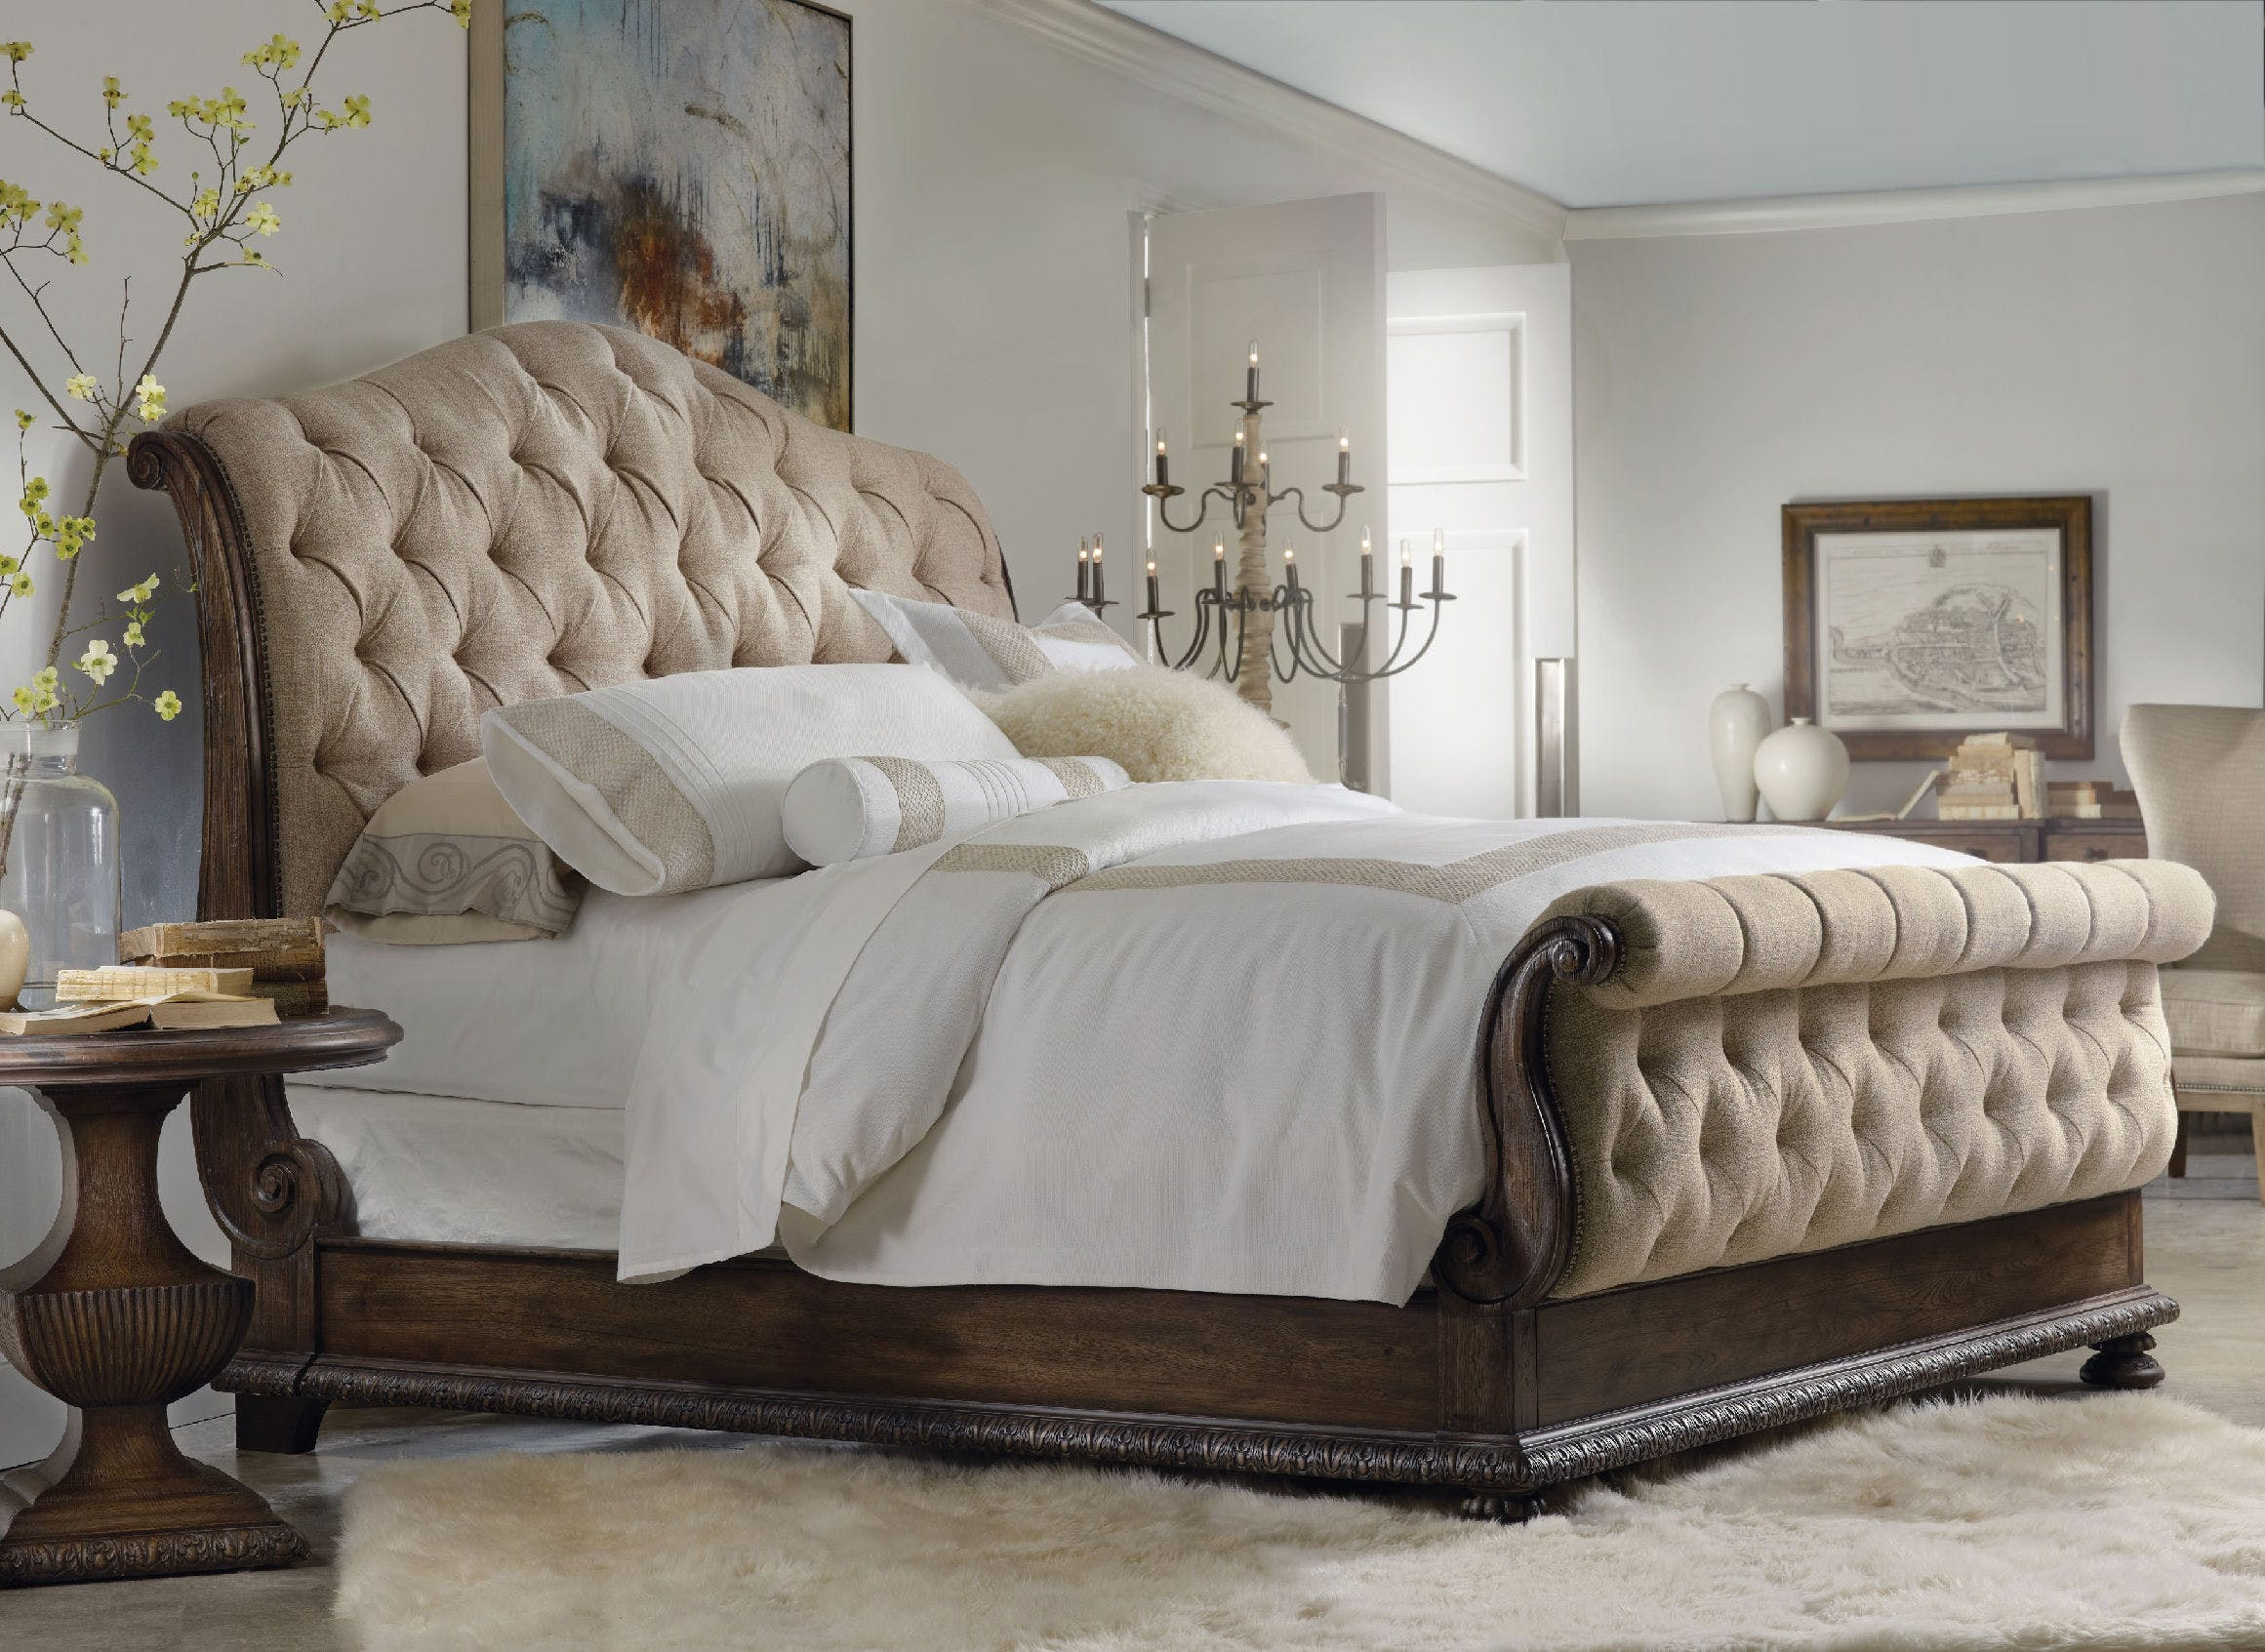 Hooker Furniture Rhapsody California King Tufted Bed 5070 90560